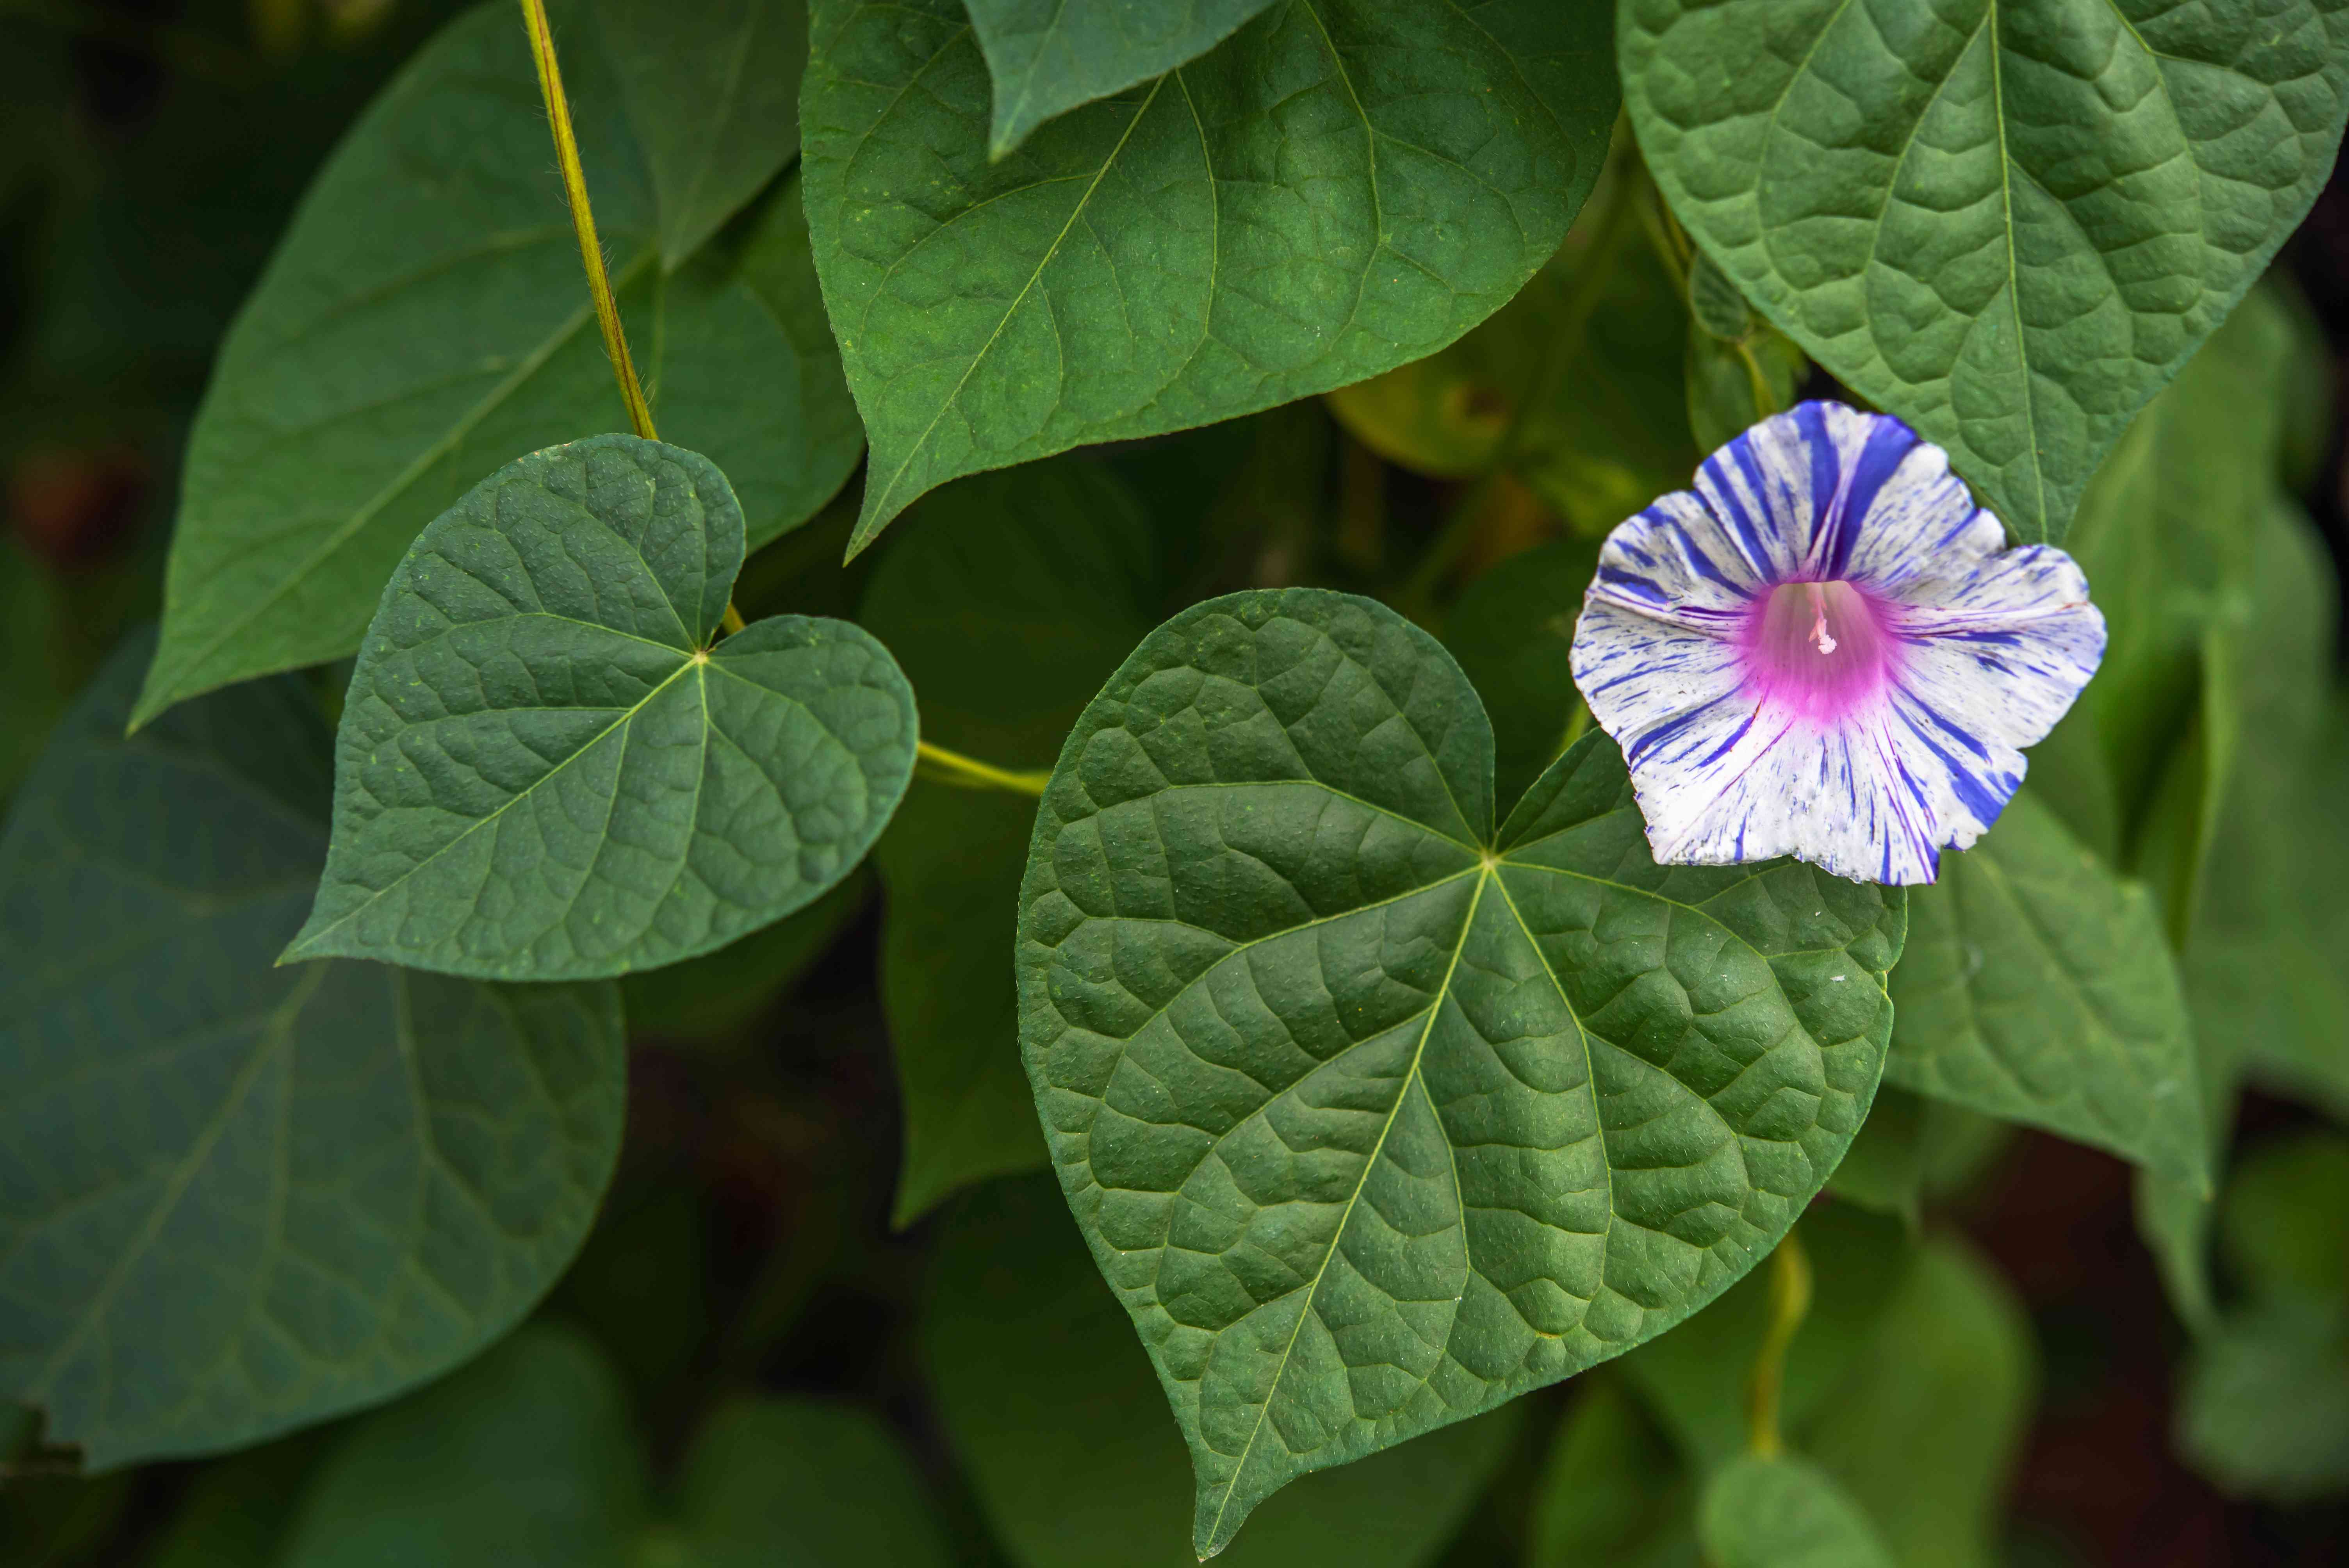 Morning glory with white and blue striped flower and green leaves